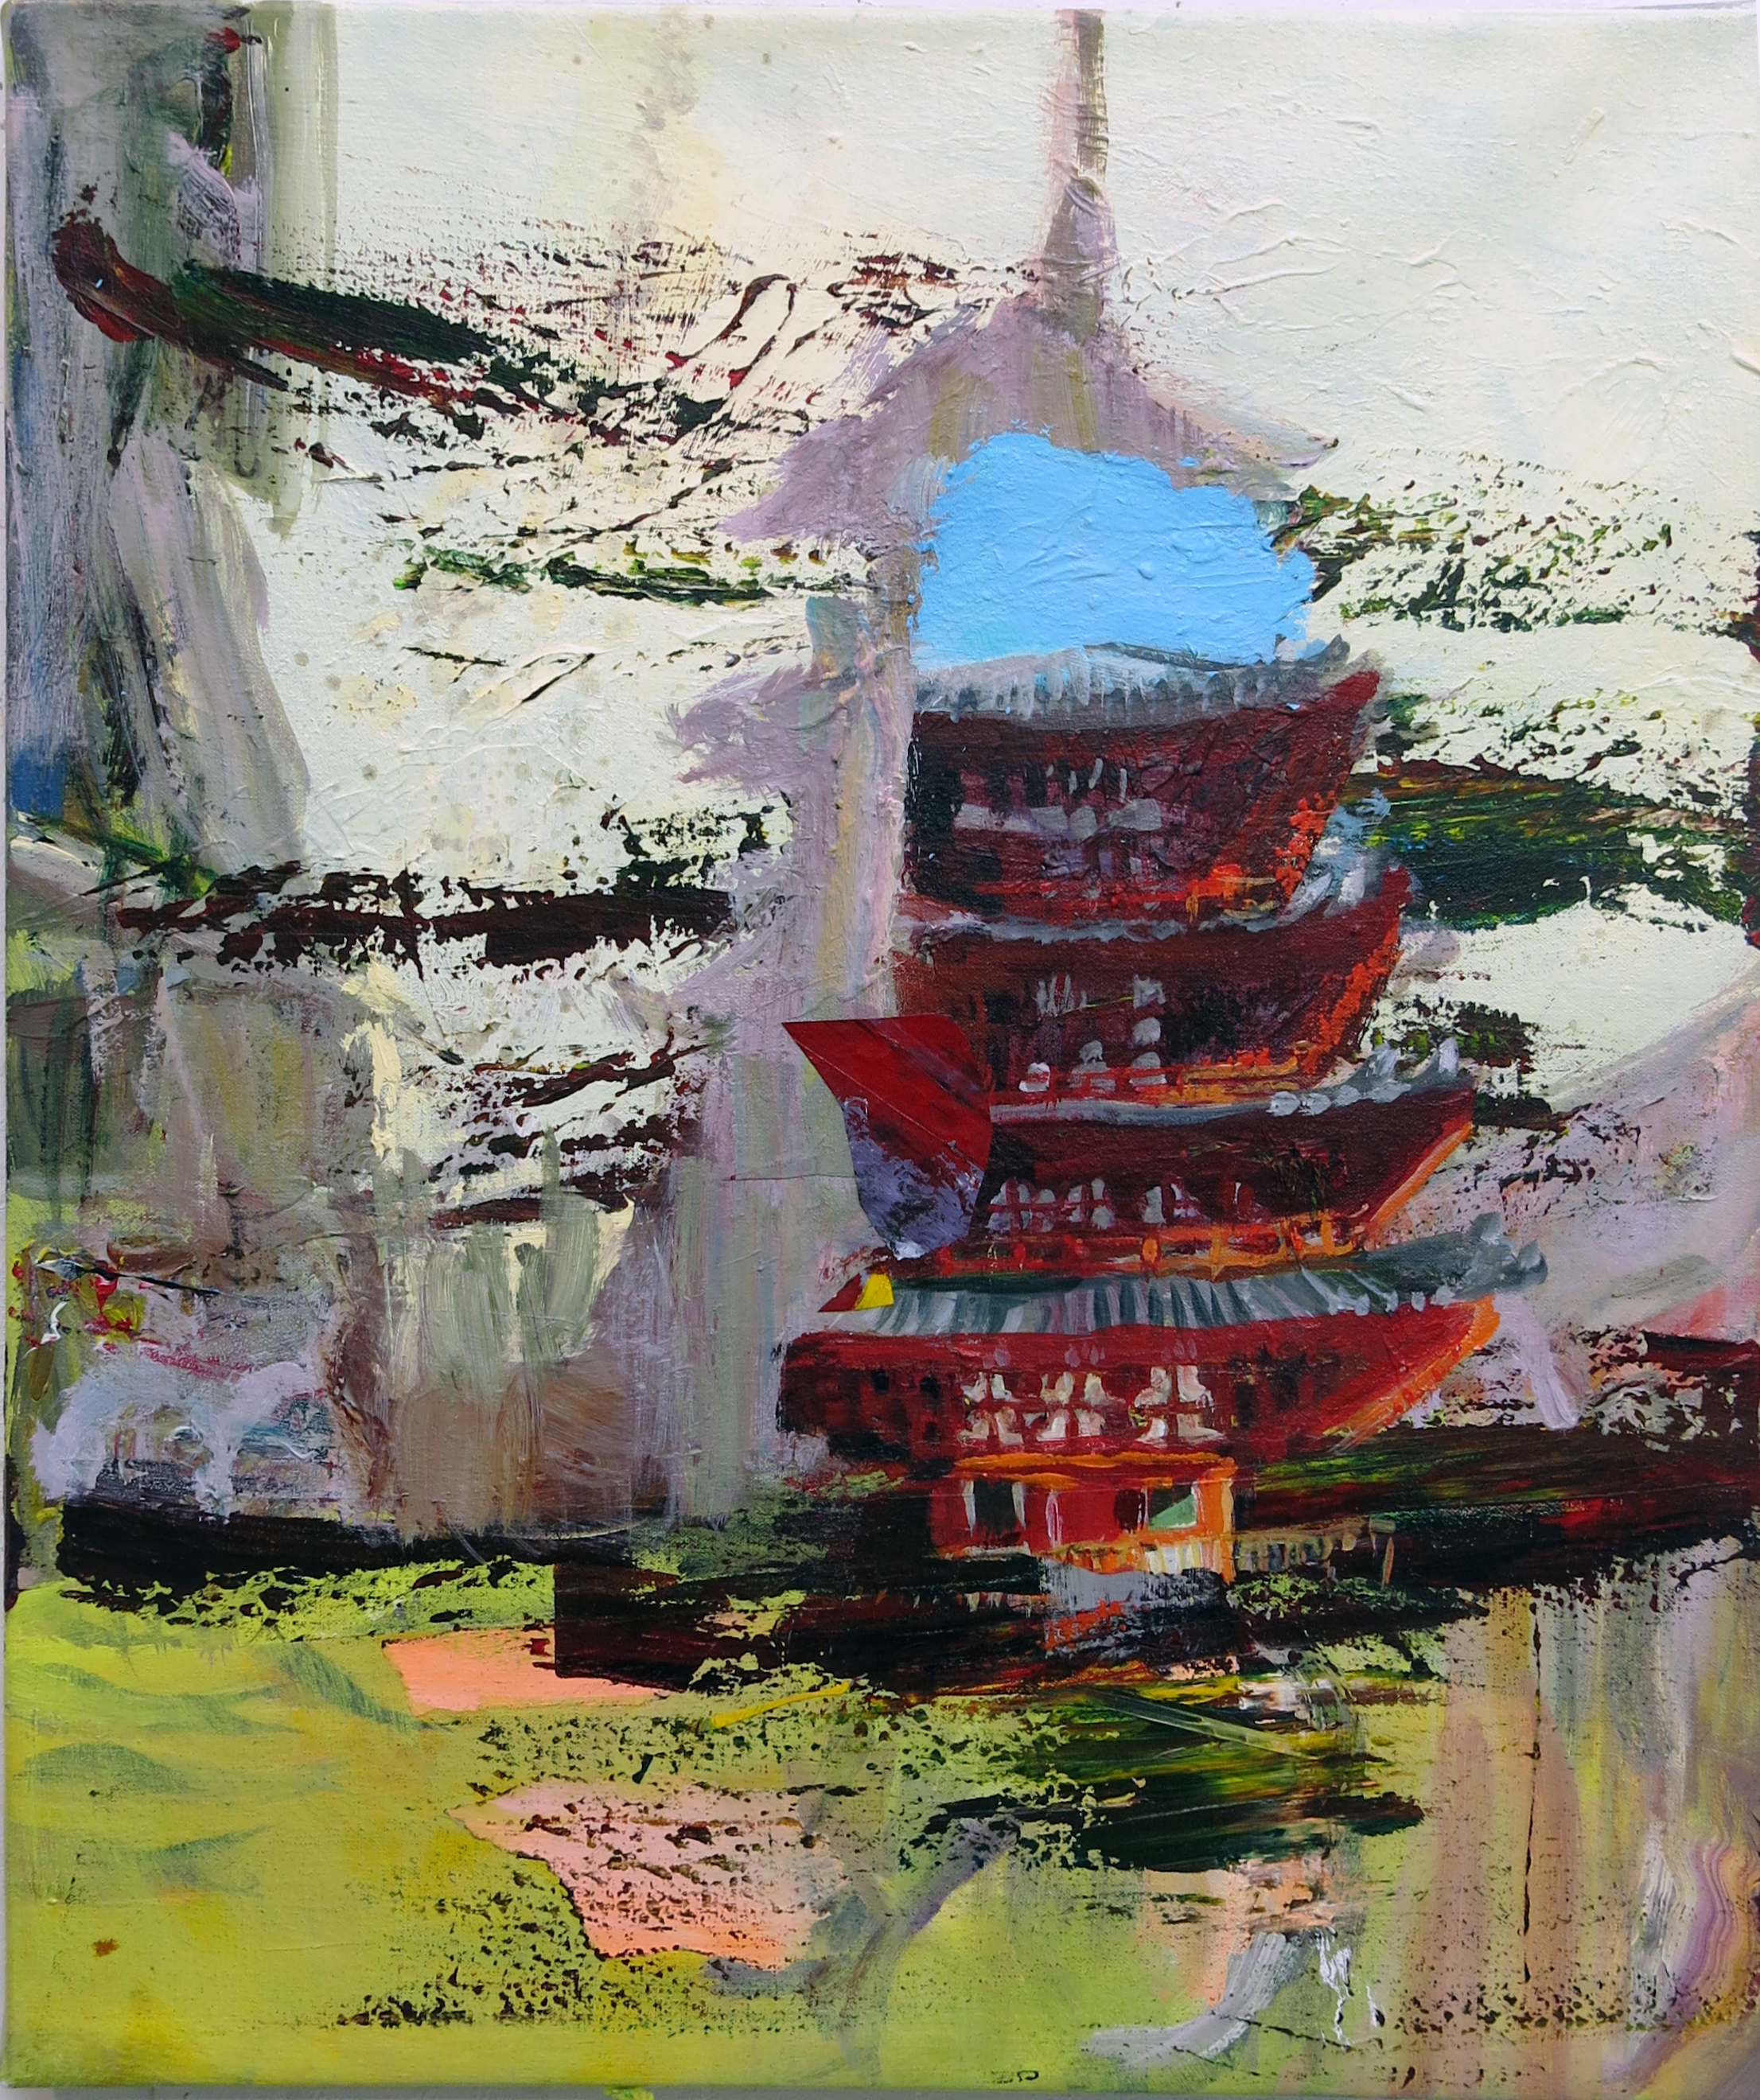 Judith Simonian, Old China on Mars, 2014, acrylic on canvas, 24h x 20w in.